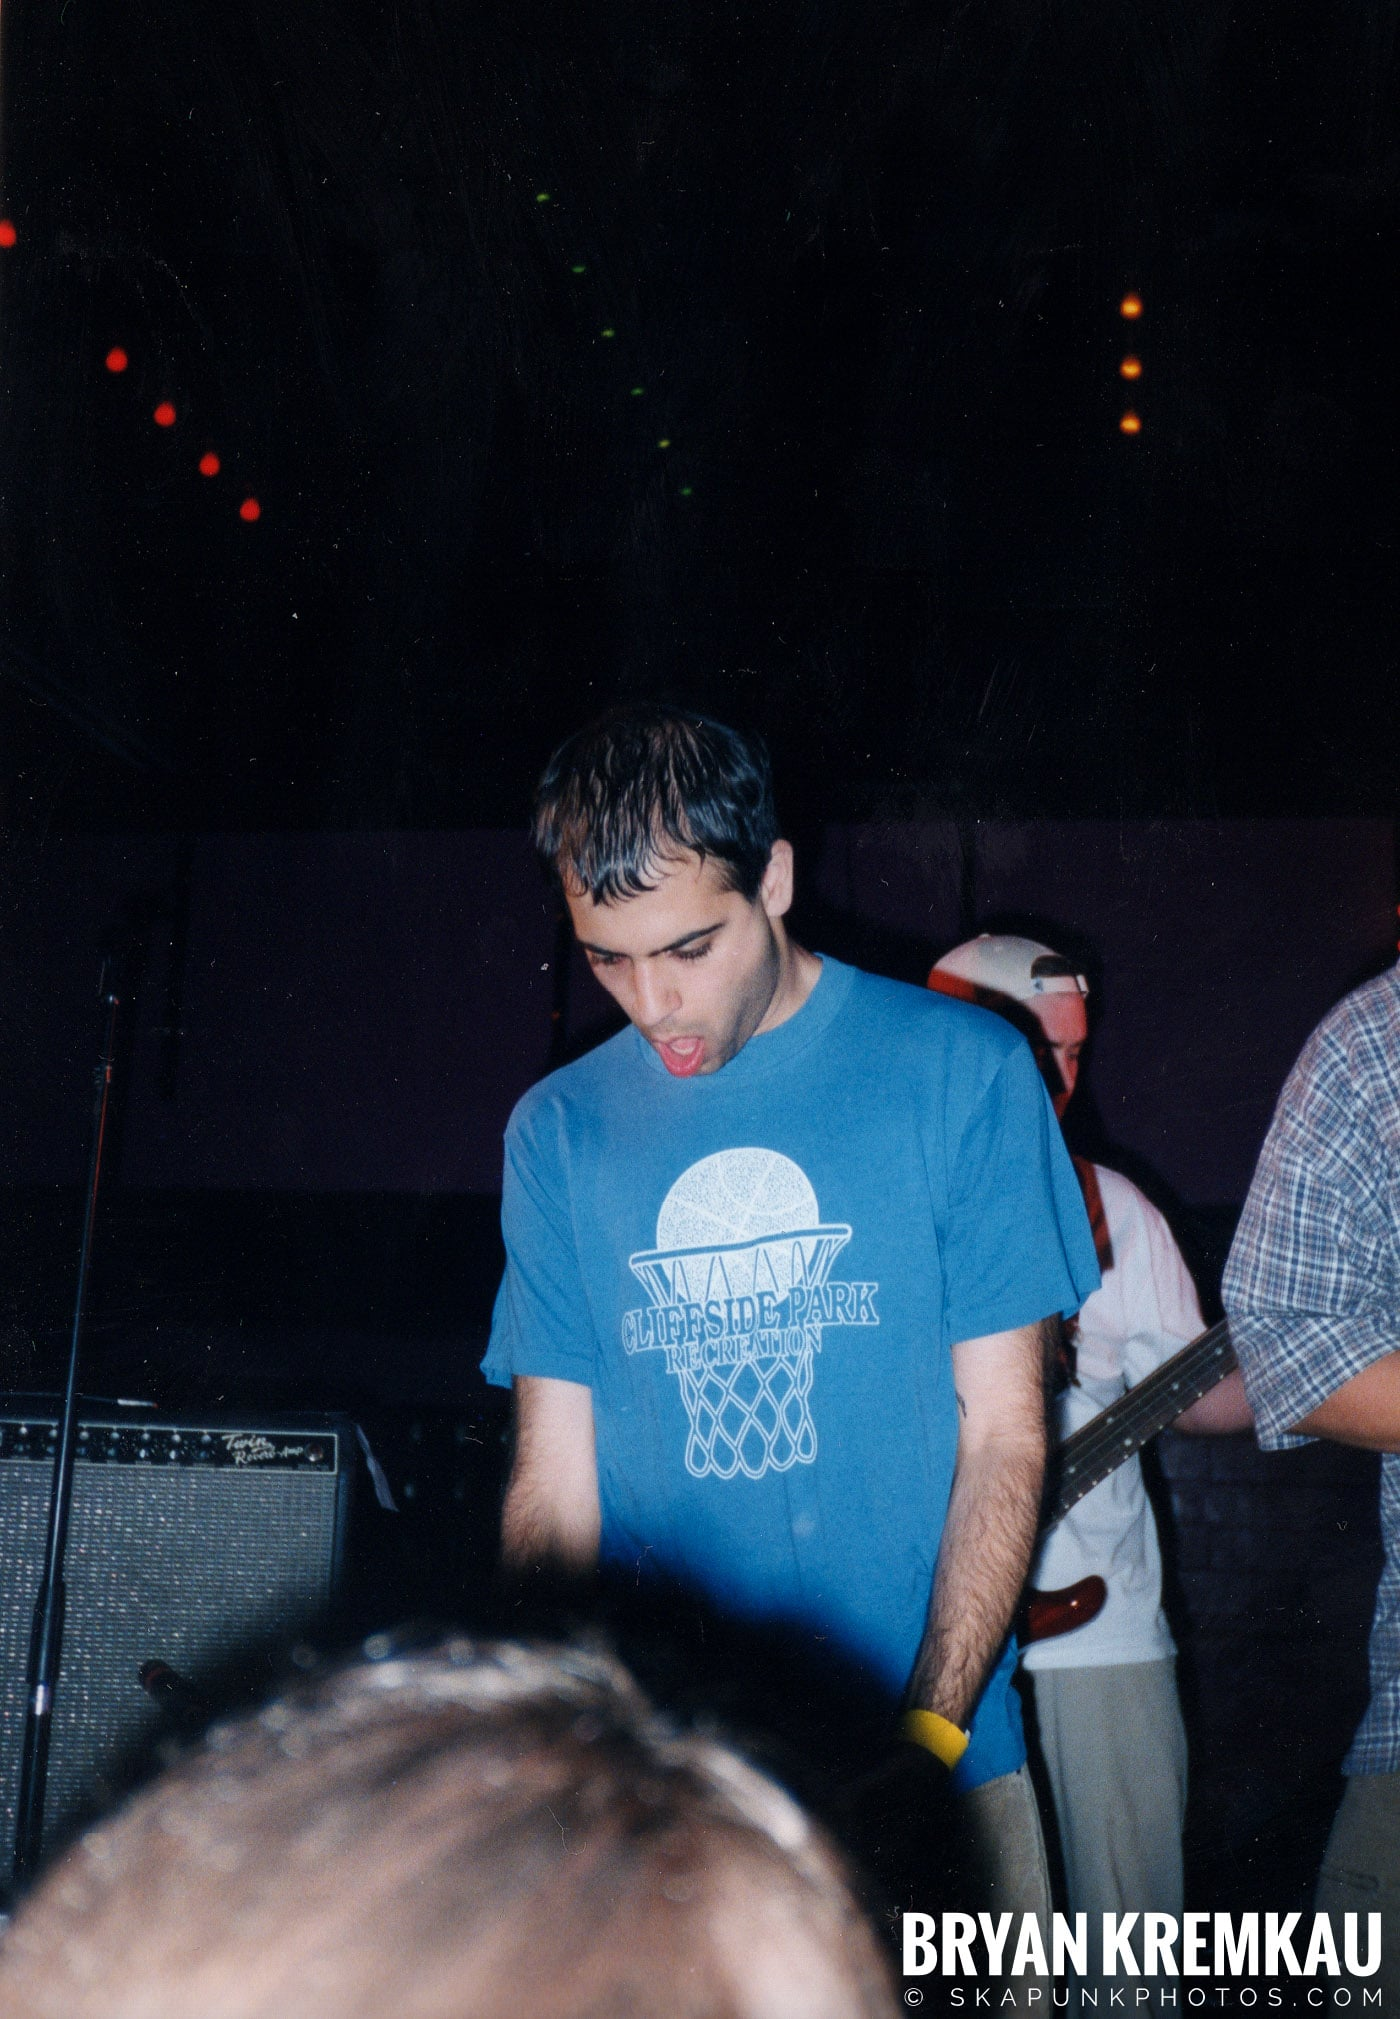 Edna's Goldfish @ Skater's World, Wayne, NJ - 5.23.98 (2)